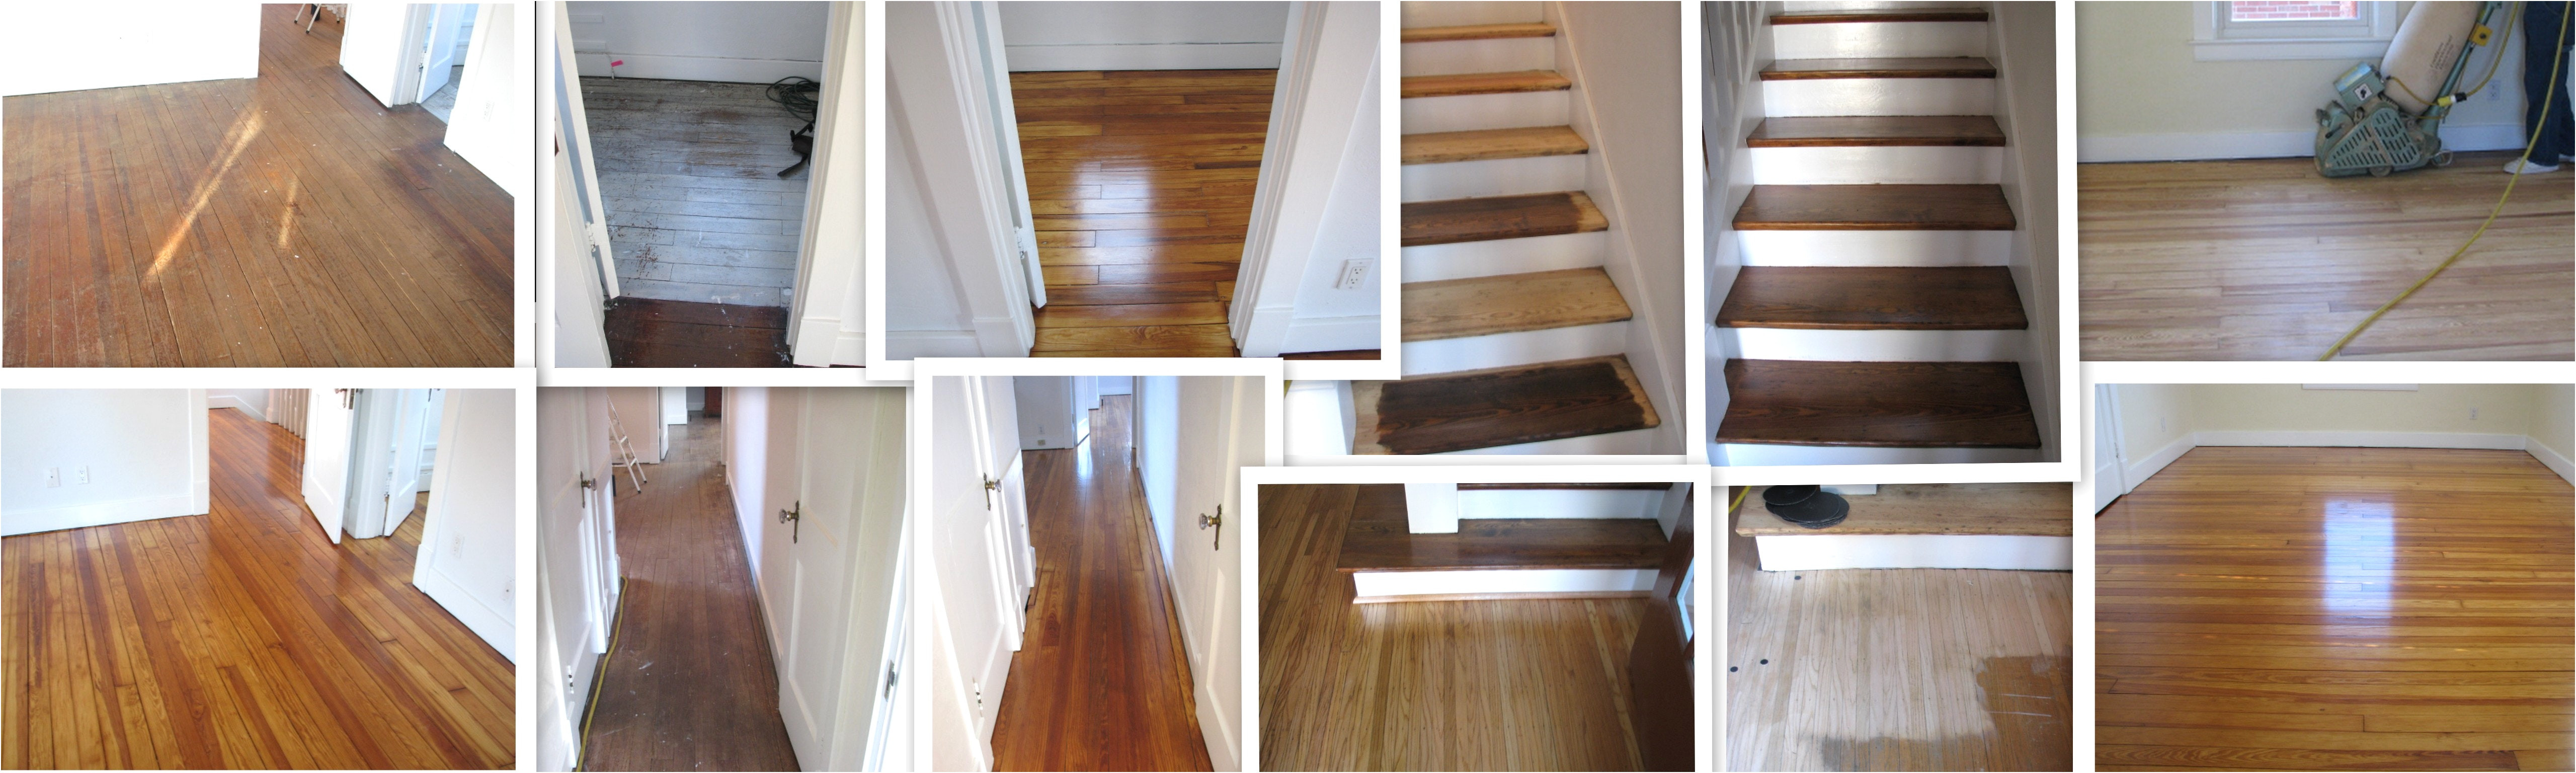 Mazama Acacia Hardwood Flooring Of Types Of Hardwood Fossilized Bamboo Flooring is Hardest Wood with Regard to Refinish Stair Treads Oak Elegant Hardwood Floors Types Laminate Flooring Types Hardwood Floors O